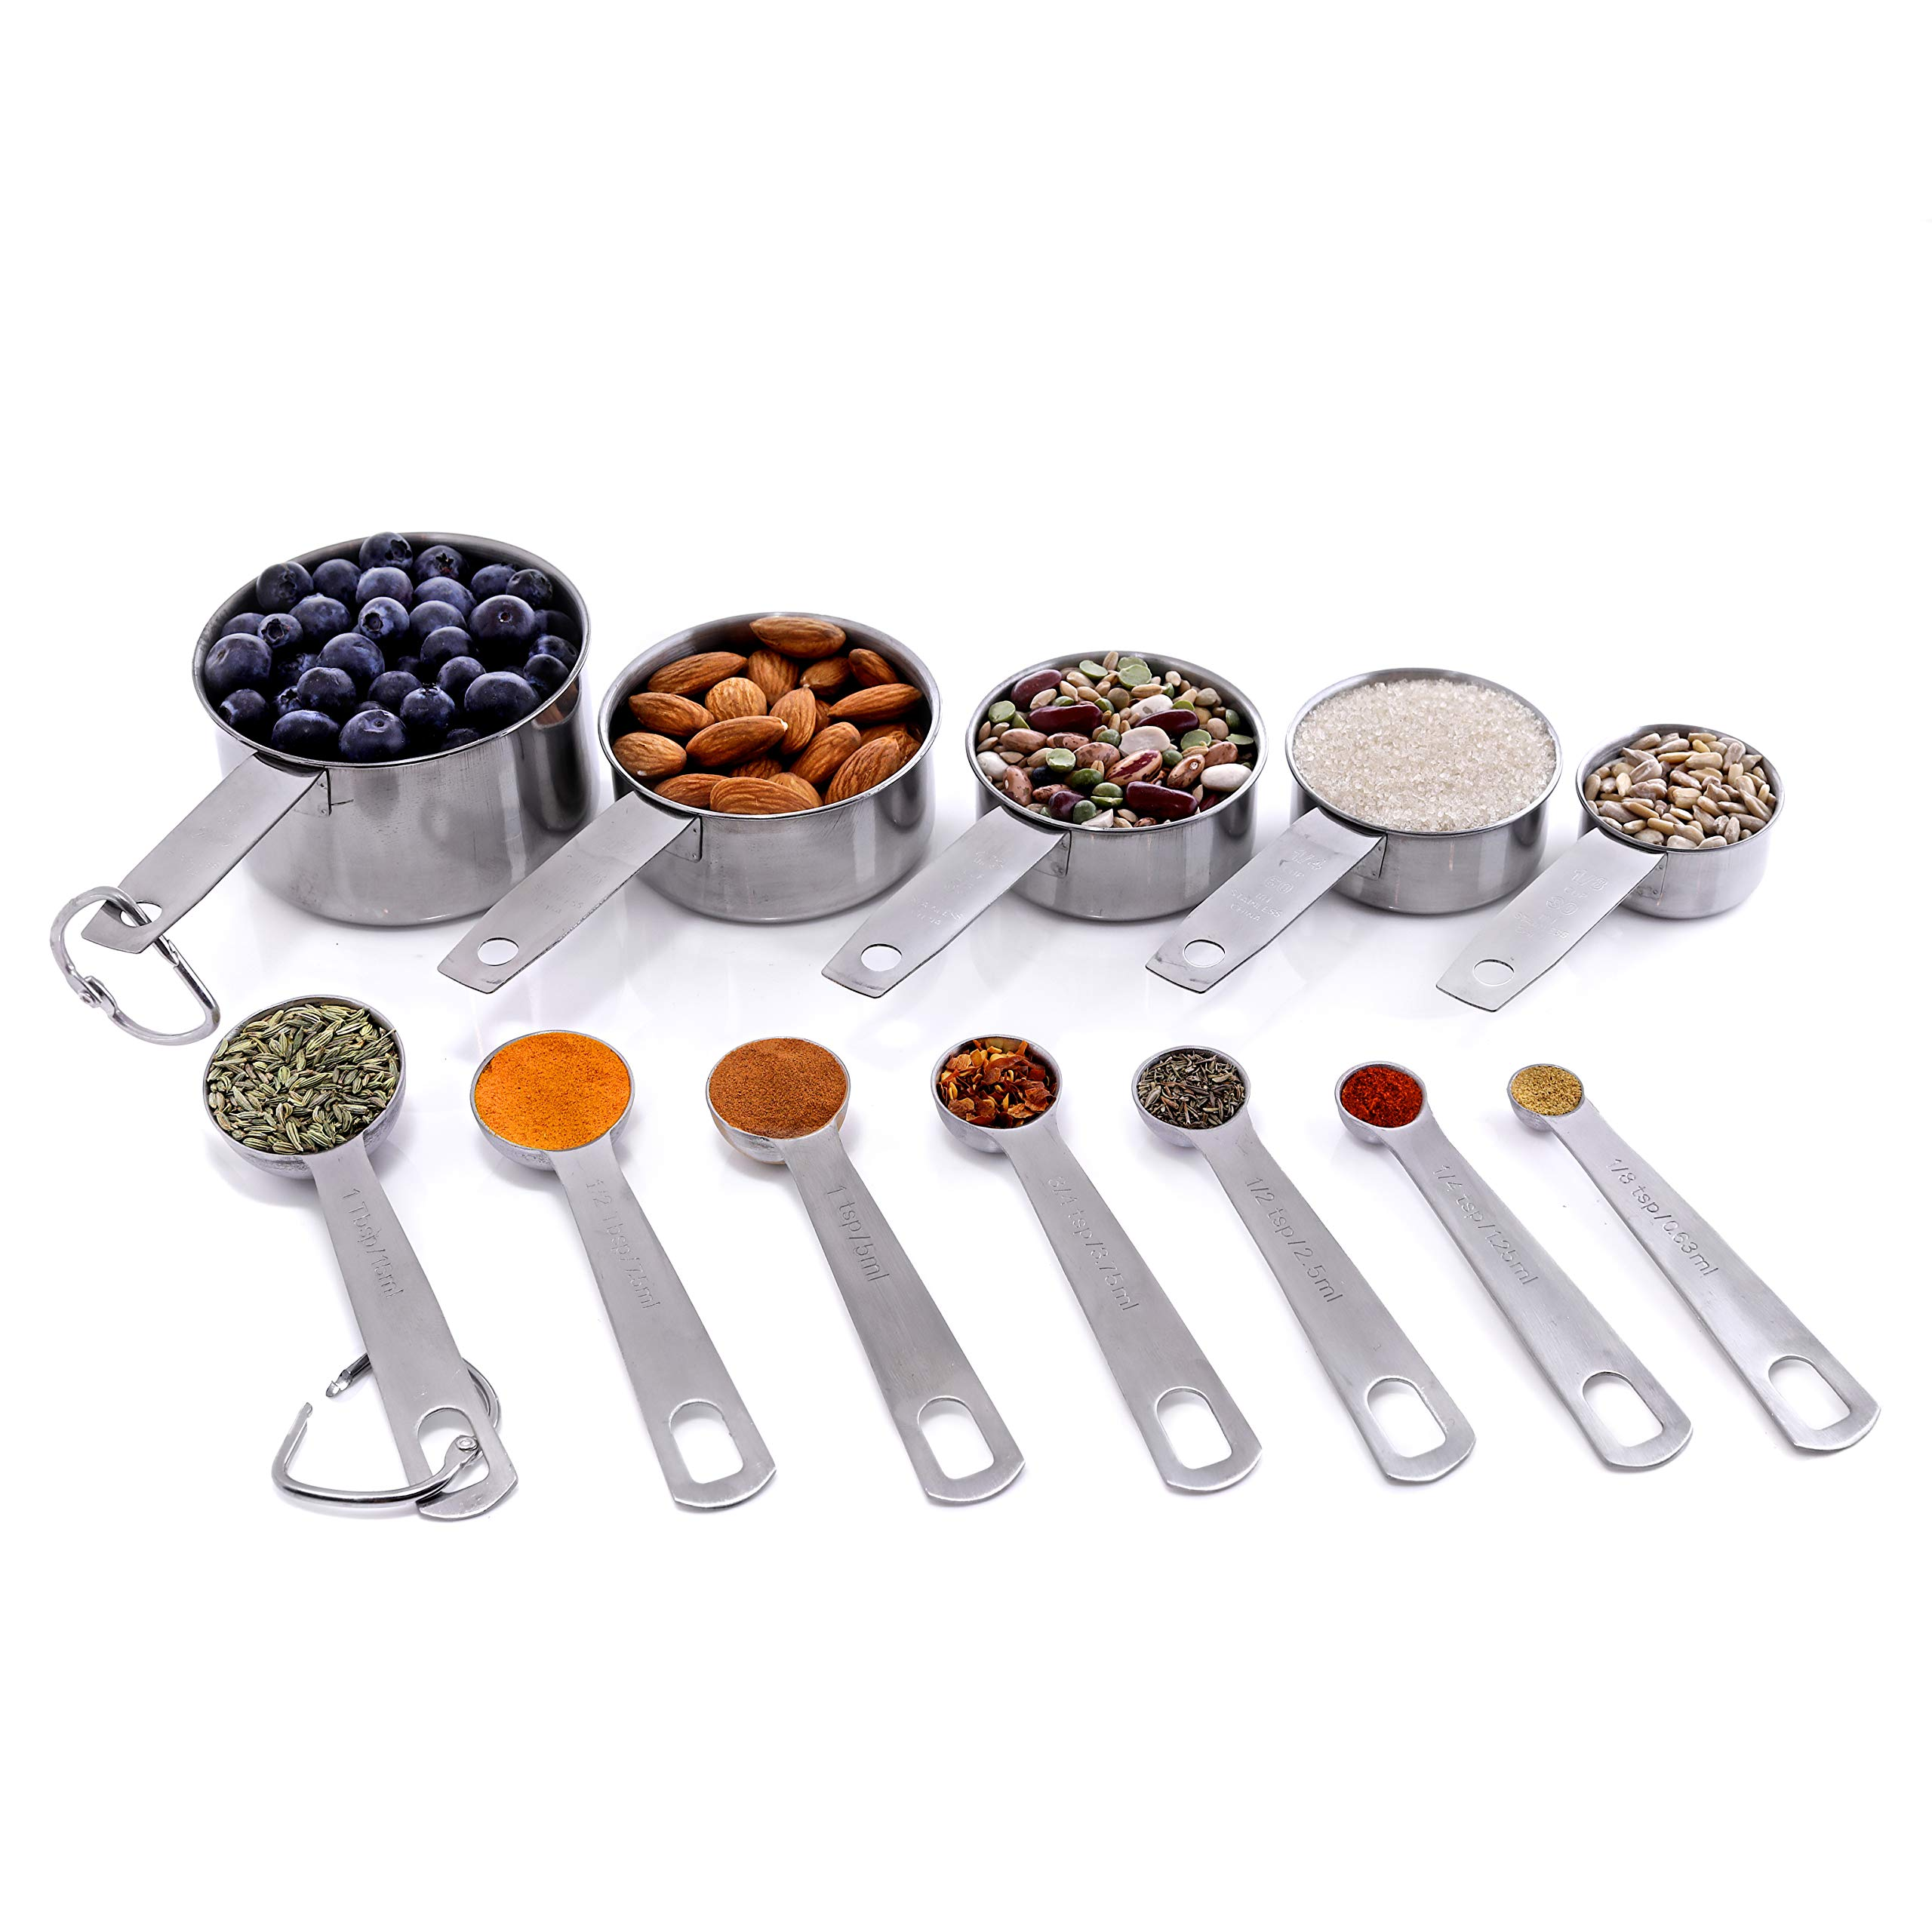 Brand New, Set of 12 Measuring Cups and Measuring Spoons in 18/8 Stainless Steel in American & Metric Measurements from Maison Maison. For Cooking, Baking, Liquid and Dry Ingredients!